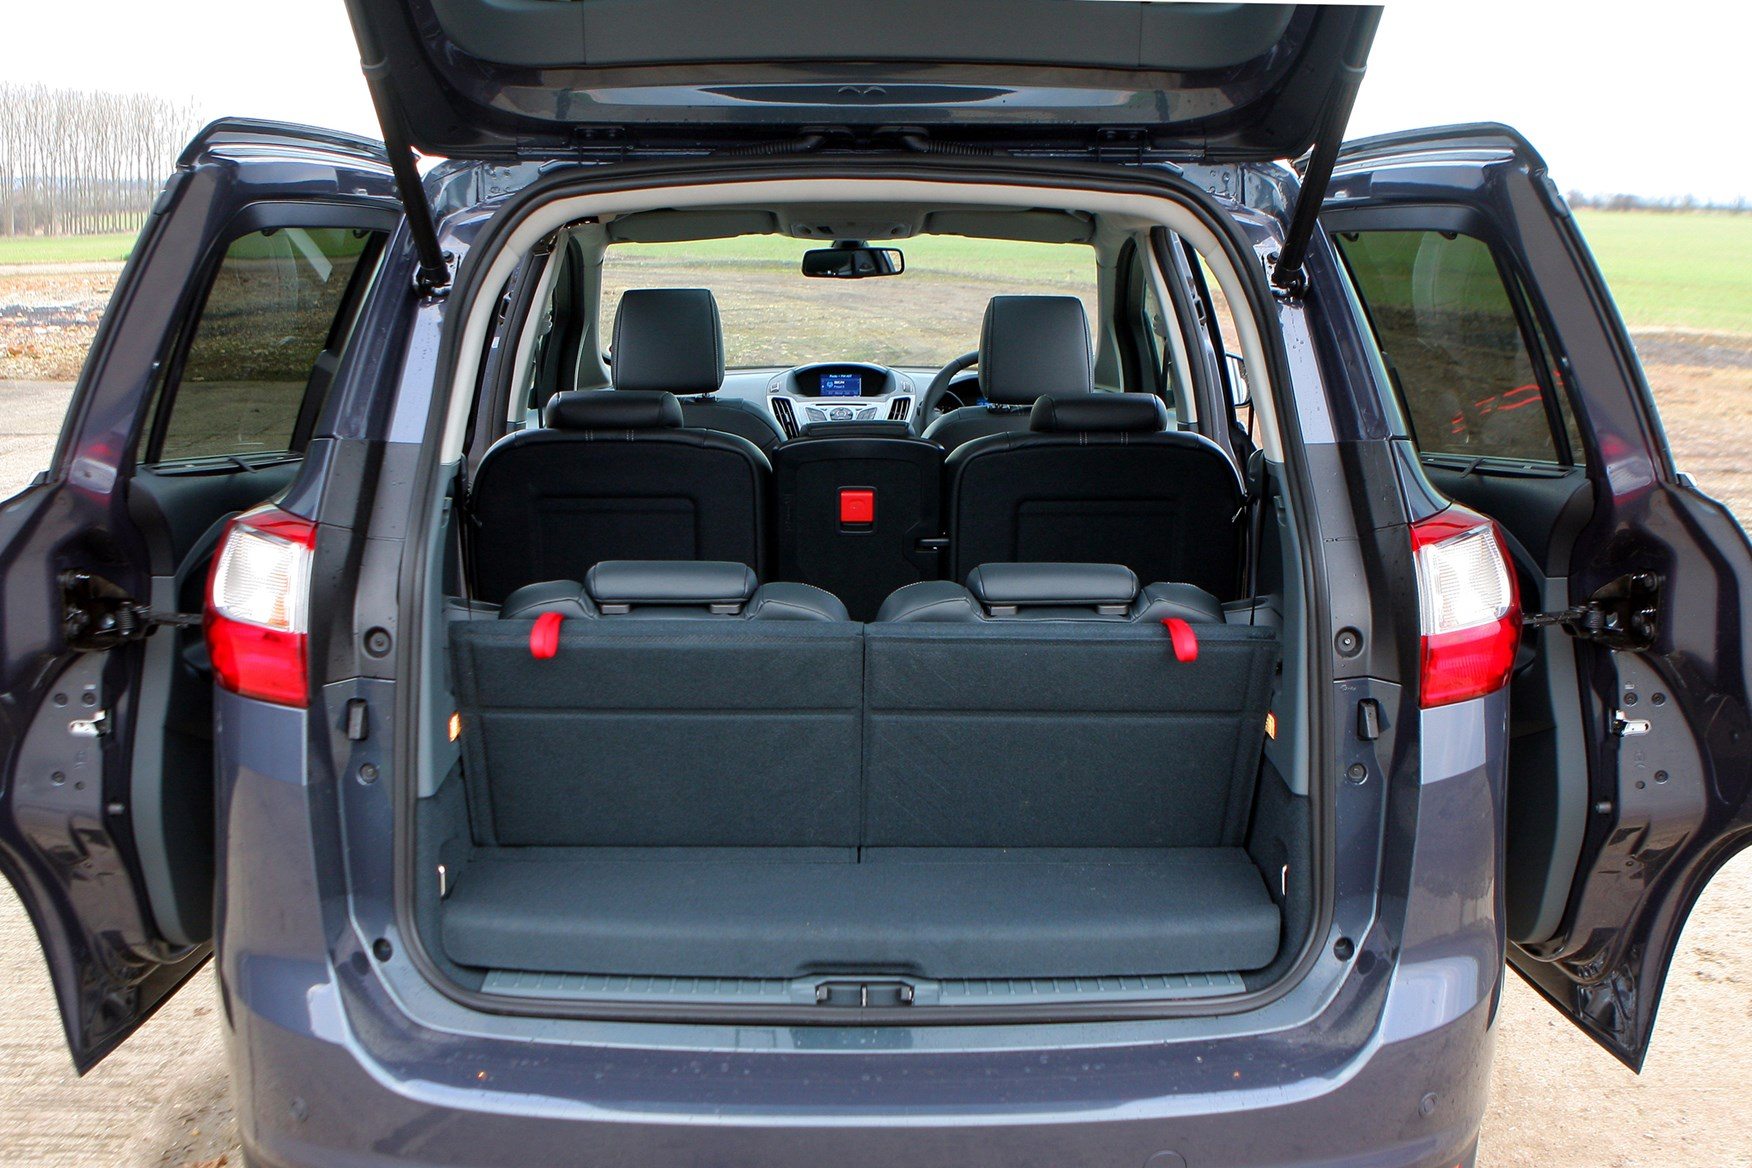 ford grand c max interior dimensions. Black Bedroom Furniture Sets. Home Design Ideas